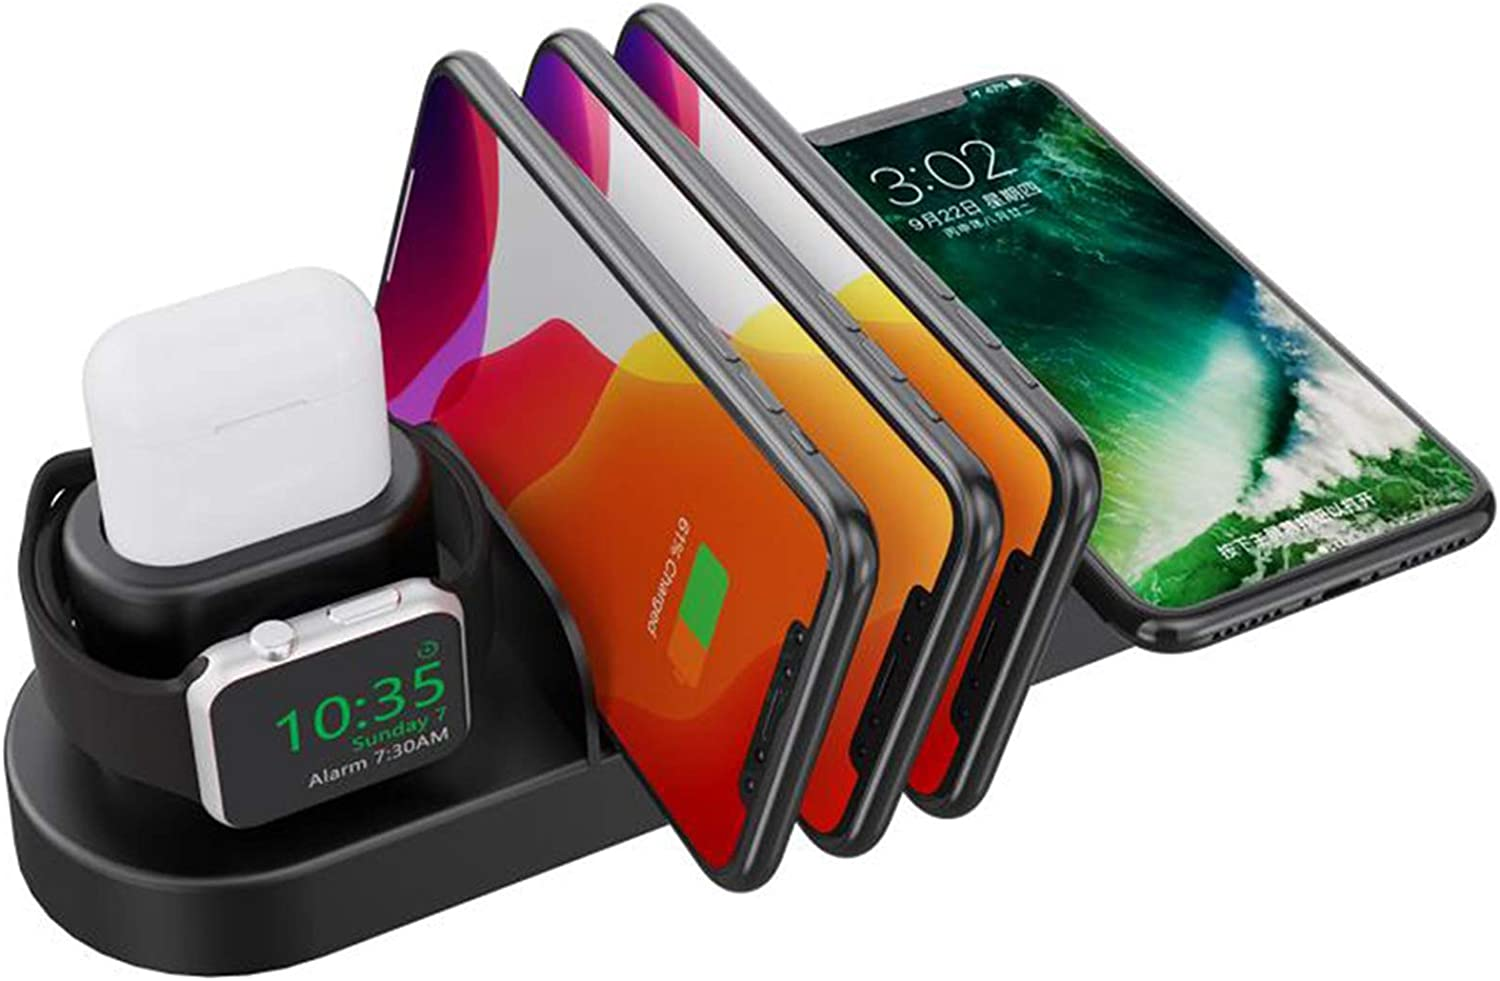 Co-Goldguard Wireless Charging Stand 6 in 1 Charger Station Compatible with iPhone Airpods Apple iWatch Series 5/4/3/2/1, iPhone 11/11 Pro/11 Pro Max/X/XR/8 Plus/All Qi Phones